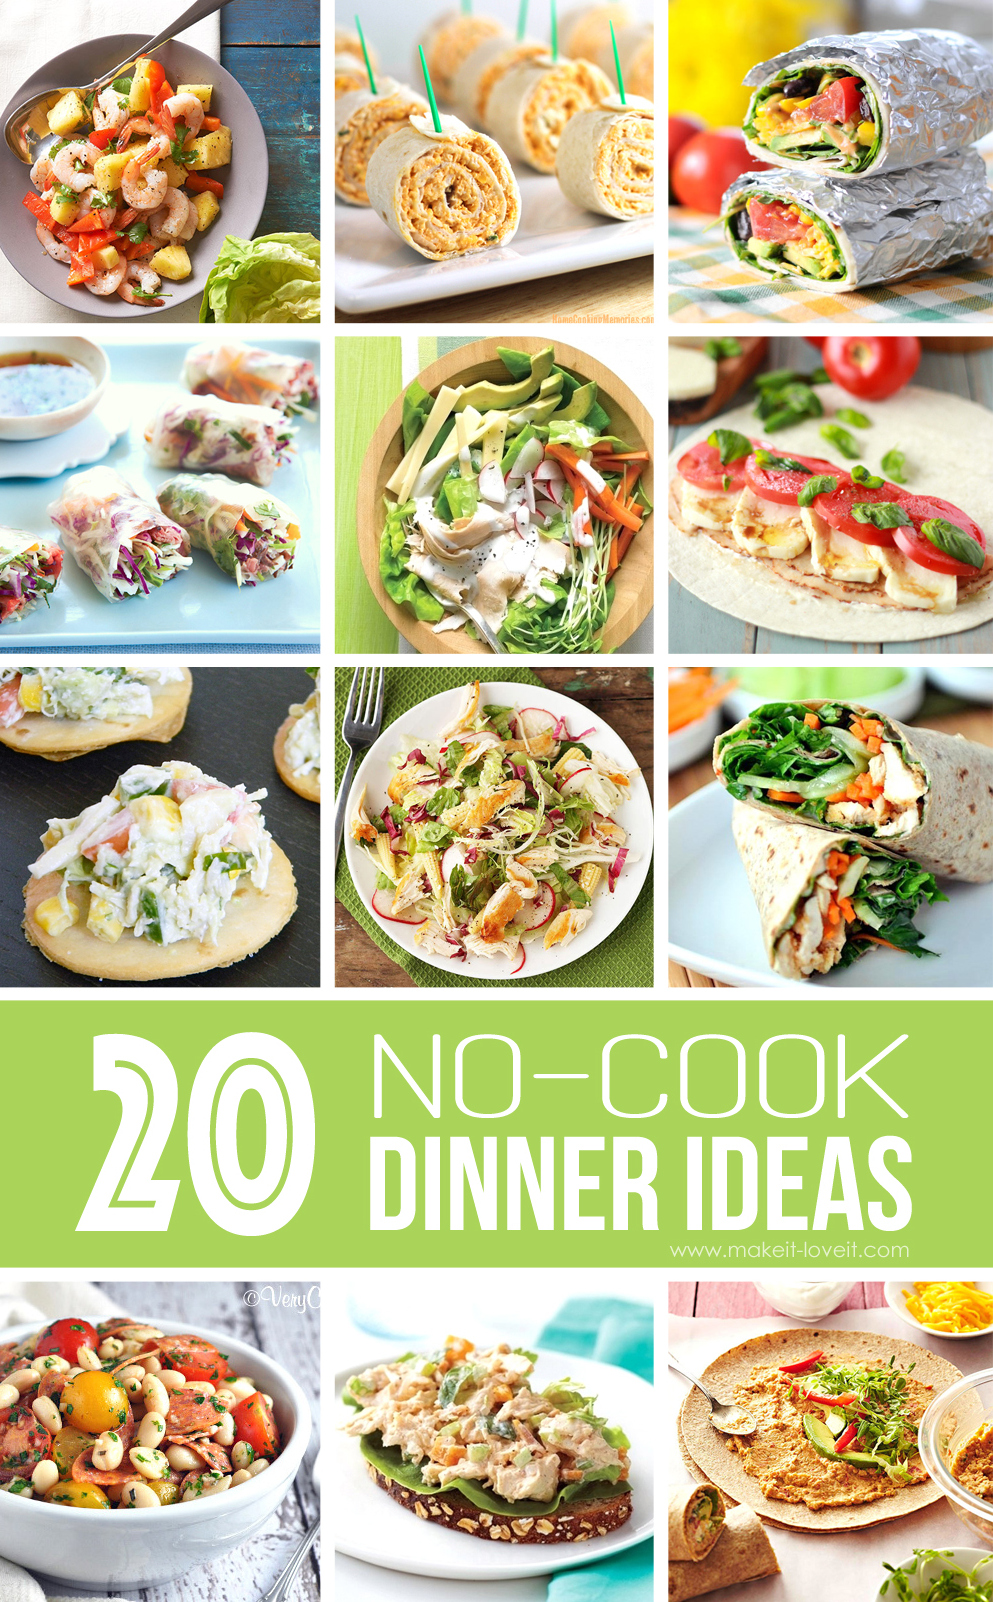 20-no-cook-dinner-ideas